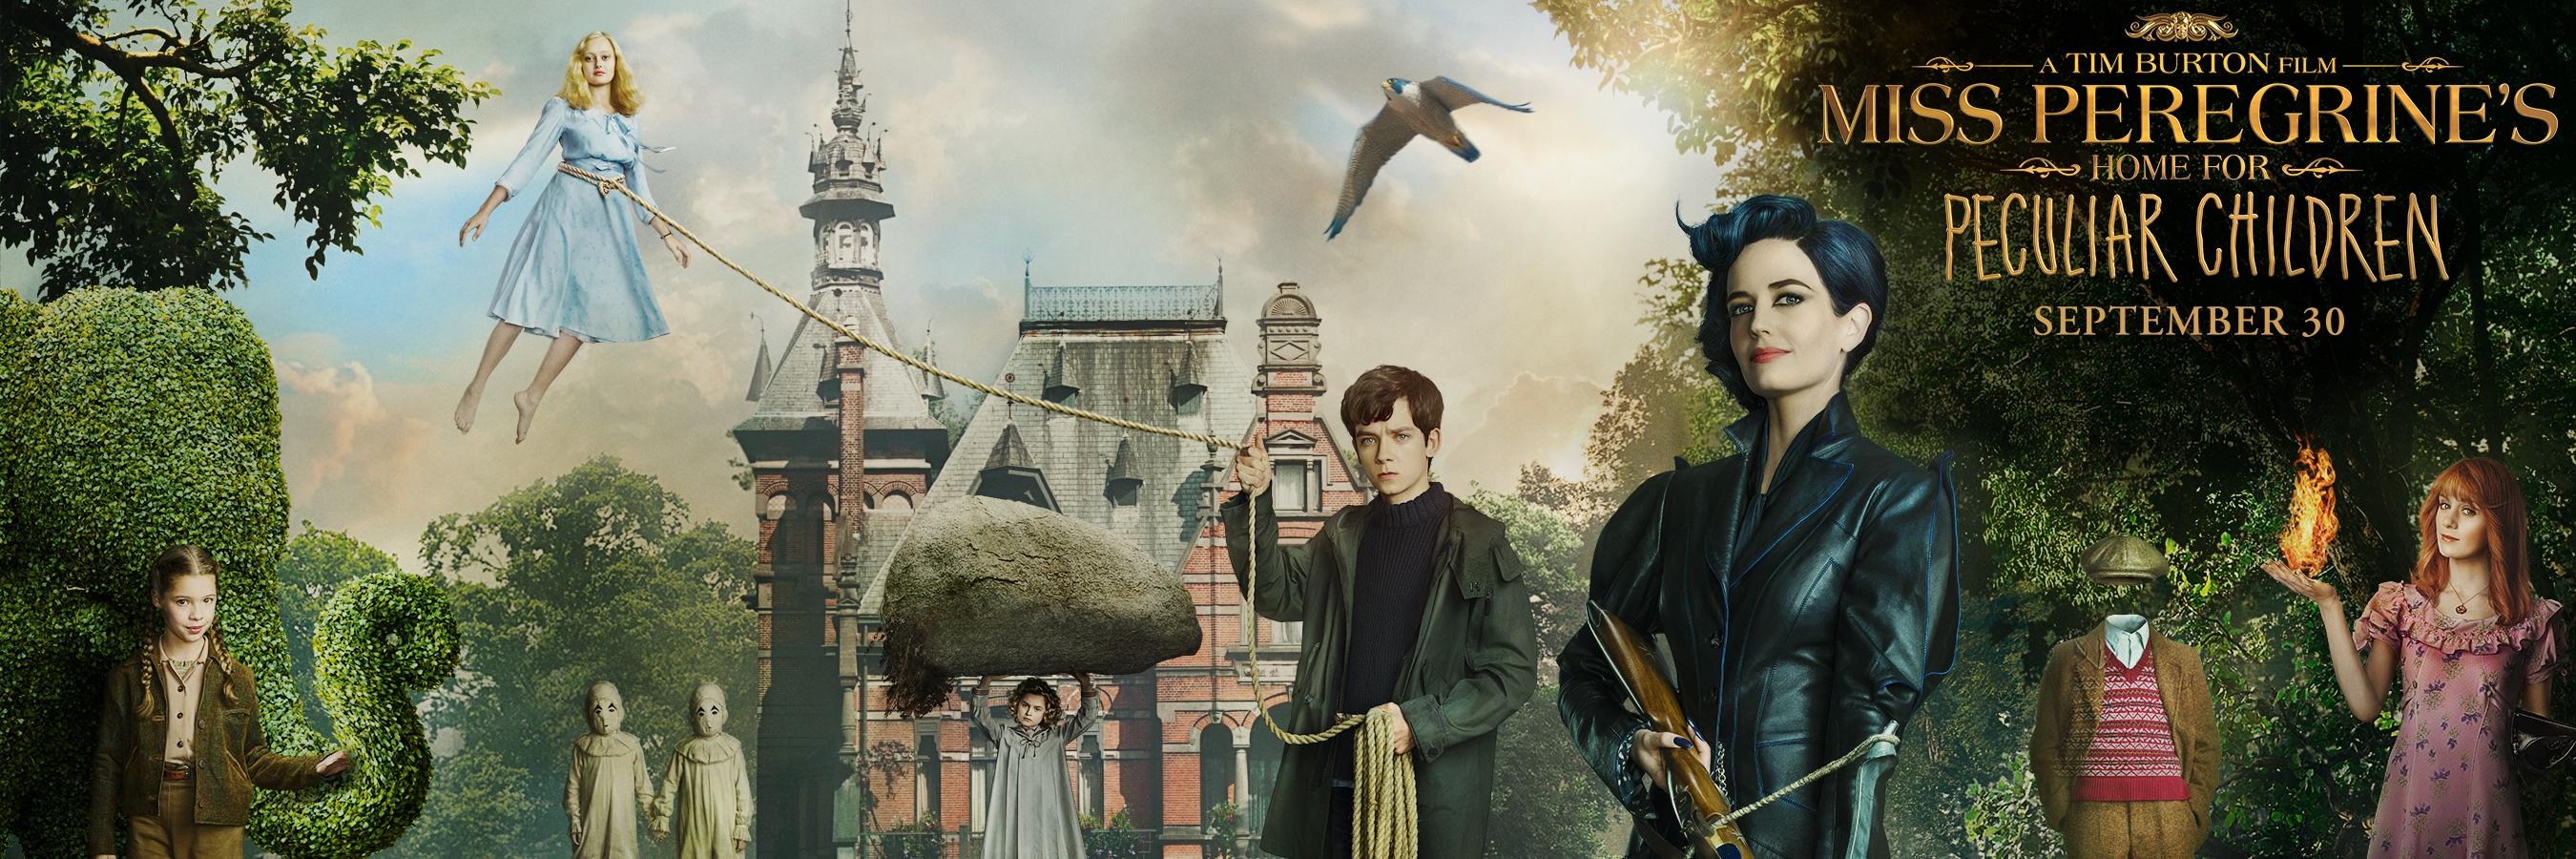 Miss peregrine s home for peculiar children hd wallpapers for Wallpaper home film